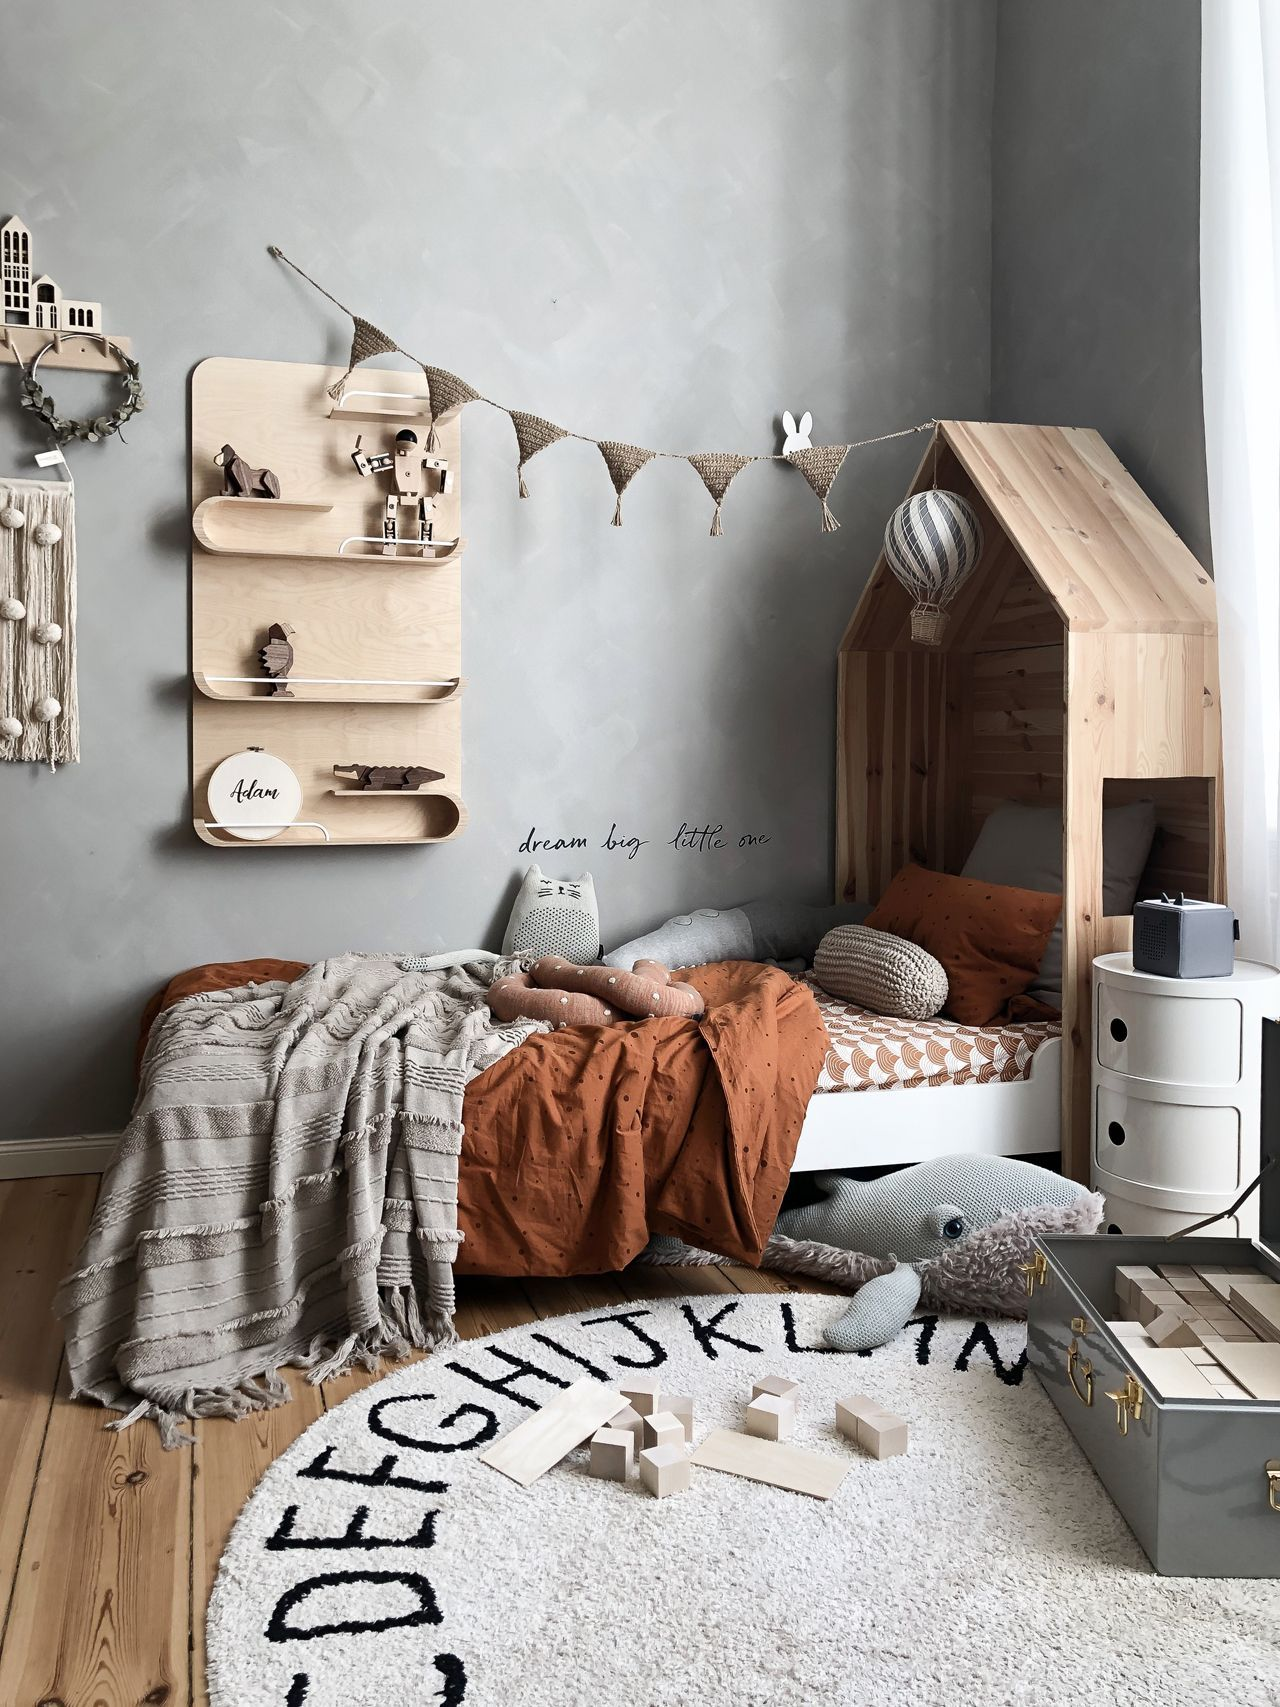 Ideas For Boys Bedrooms Get More Inspirations By Checking Out Circus Amazing Bedroom Furniture For Boys Baby Room Decor Kids Room Inspiration Big Boy Room